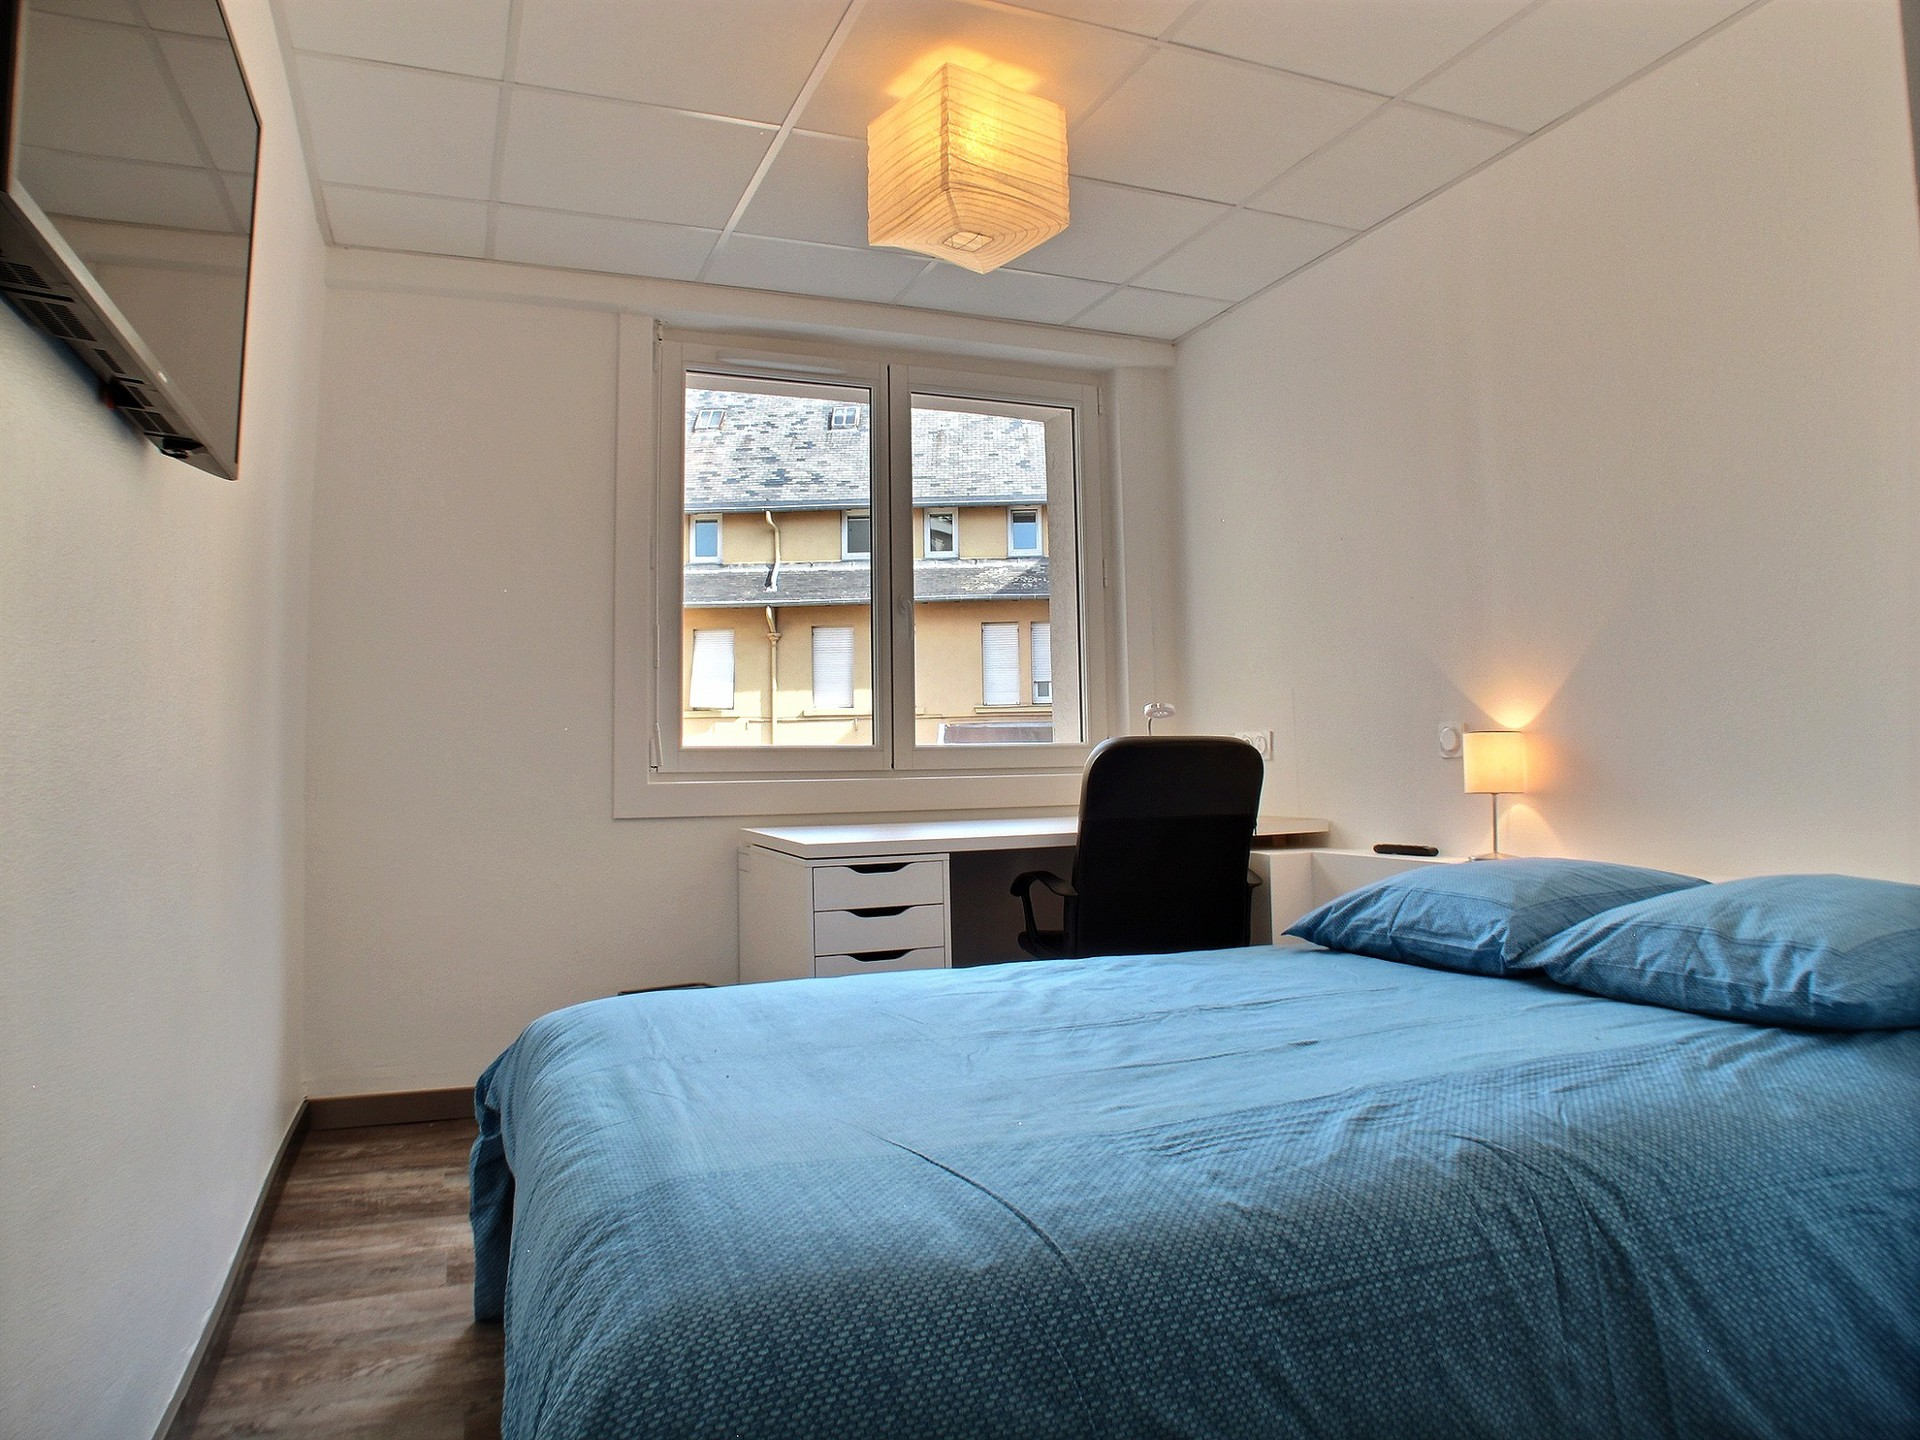 Excellent position for this double bedroom with en suite bathroo